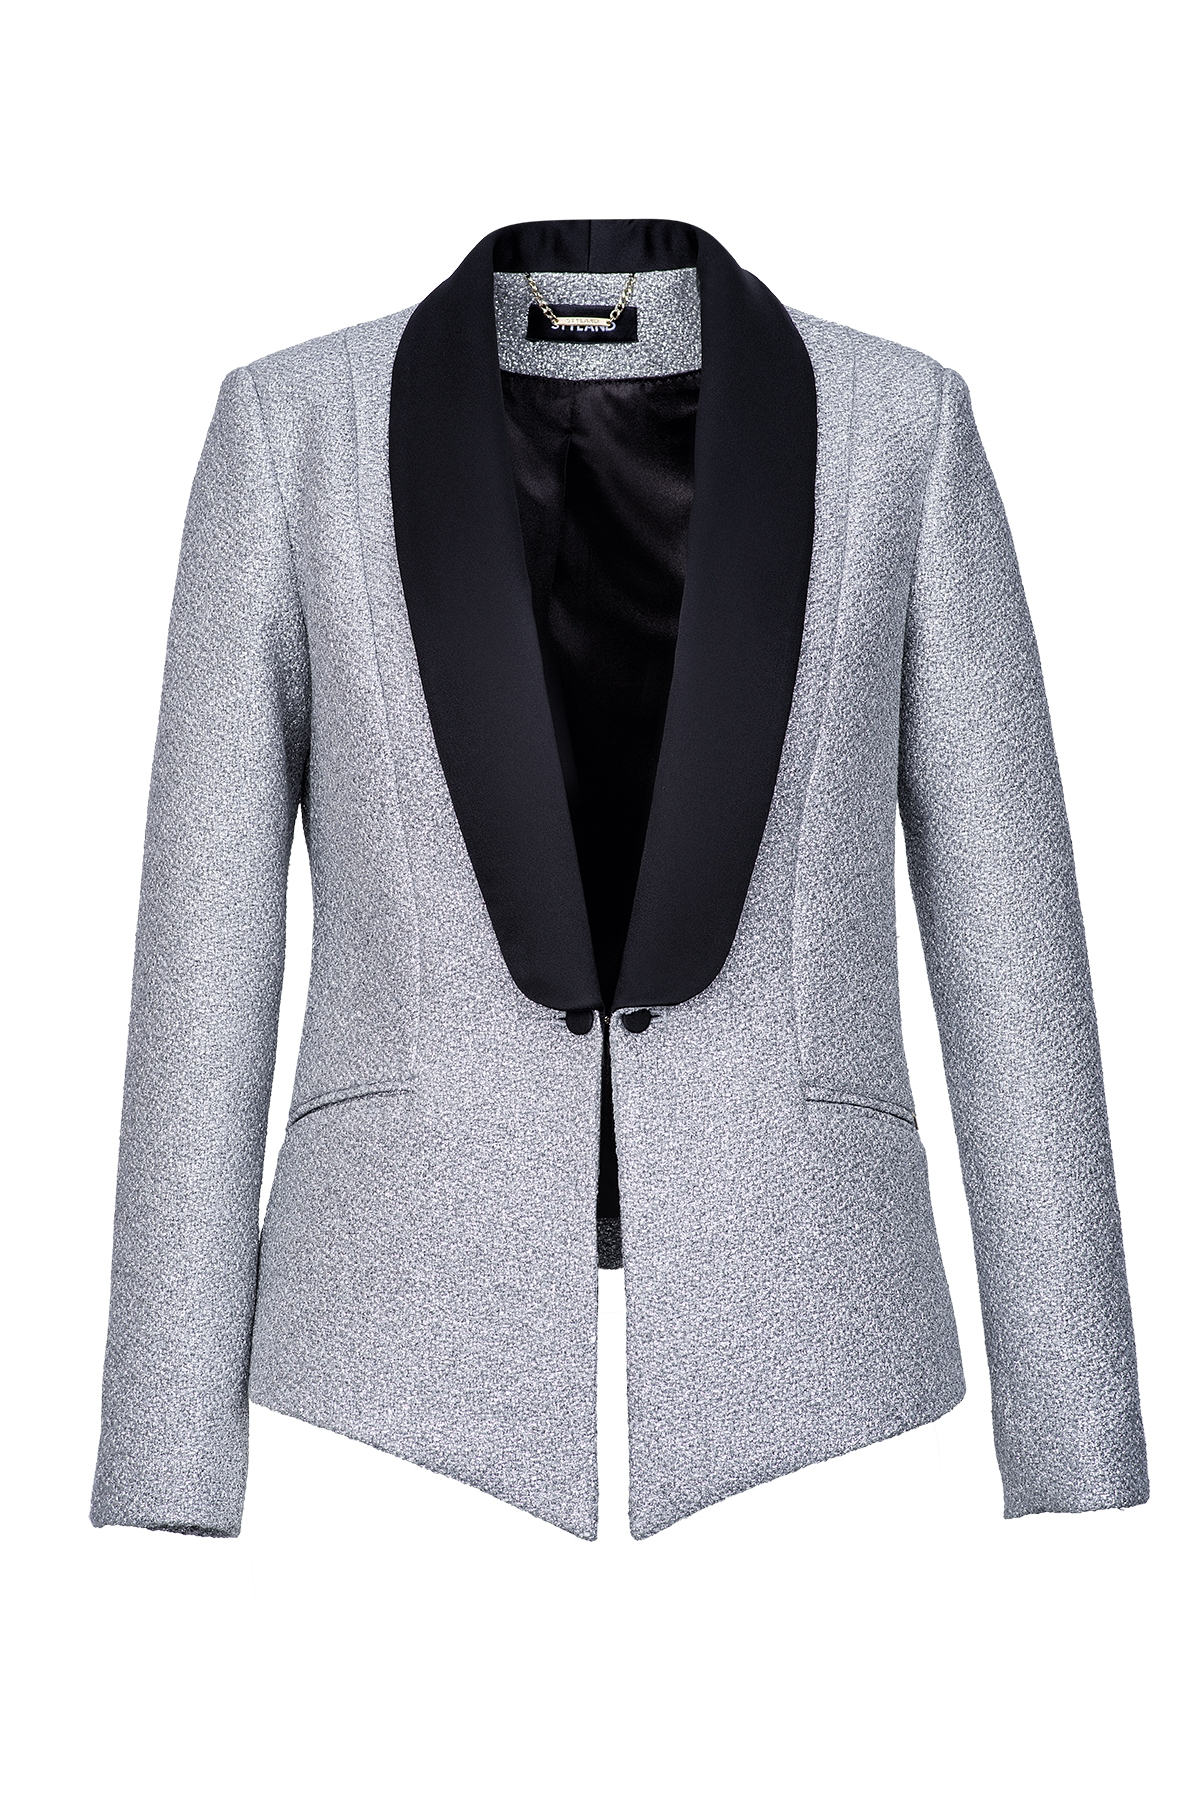 SILVER TUXEDO WITH BLACK SHAWL LAPEL